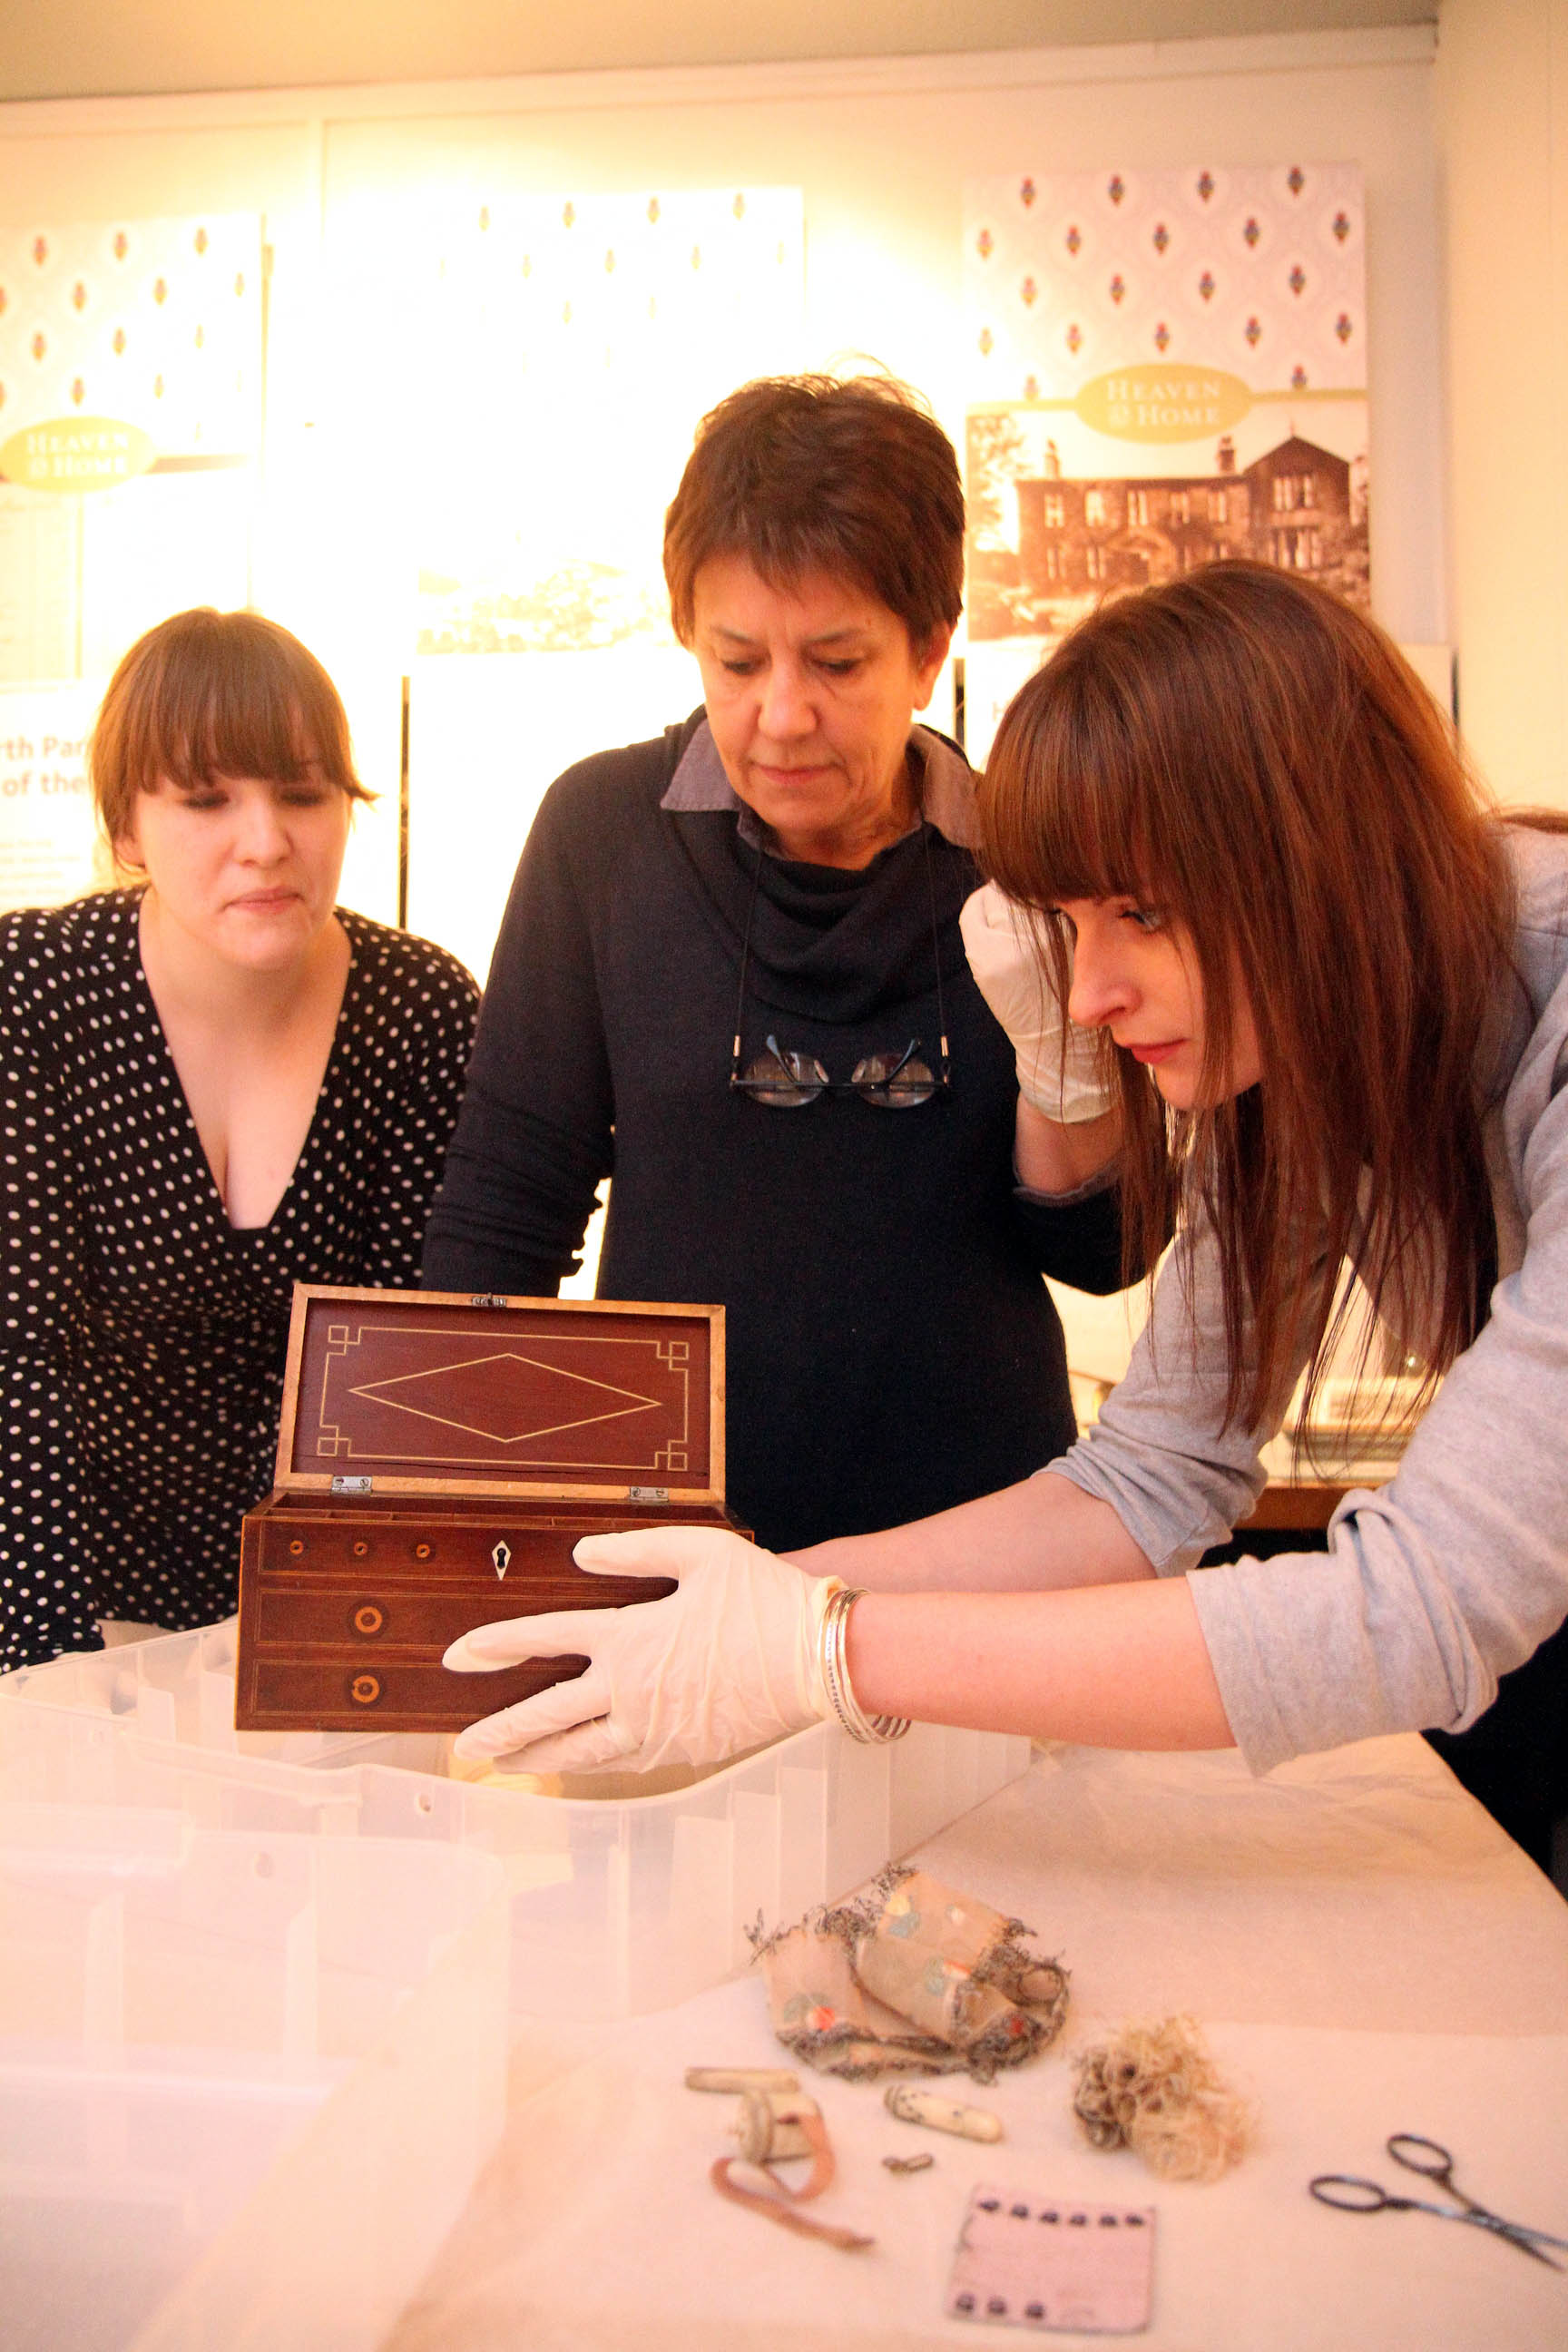 Bronte Parsonage library and information officer, Sarah Laycock, right, puts away a sewing box that belonged to the literary sisters, watched by volunteer steward, Amy Rowbottom, left, and museum assistant, Linda Pierson